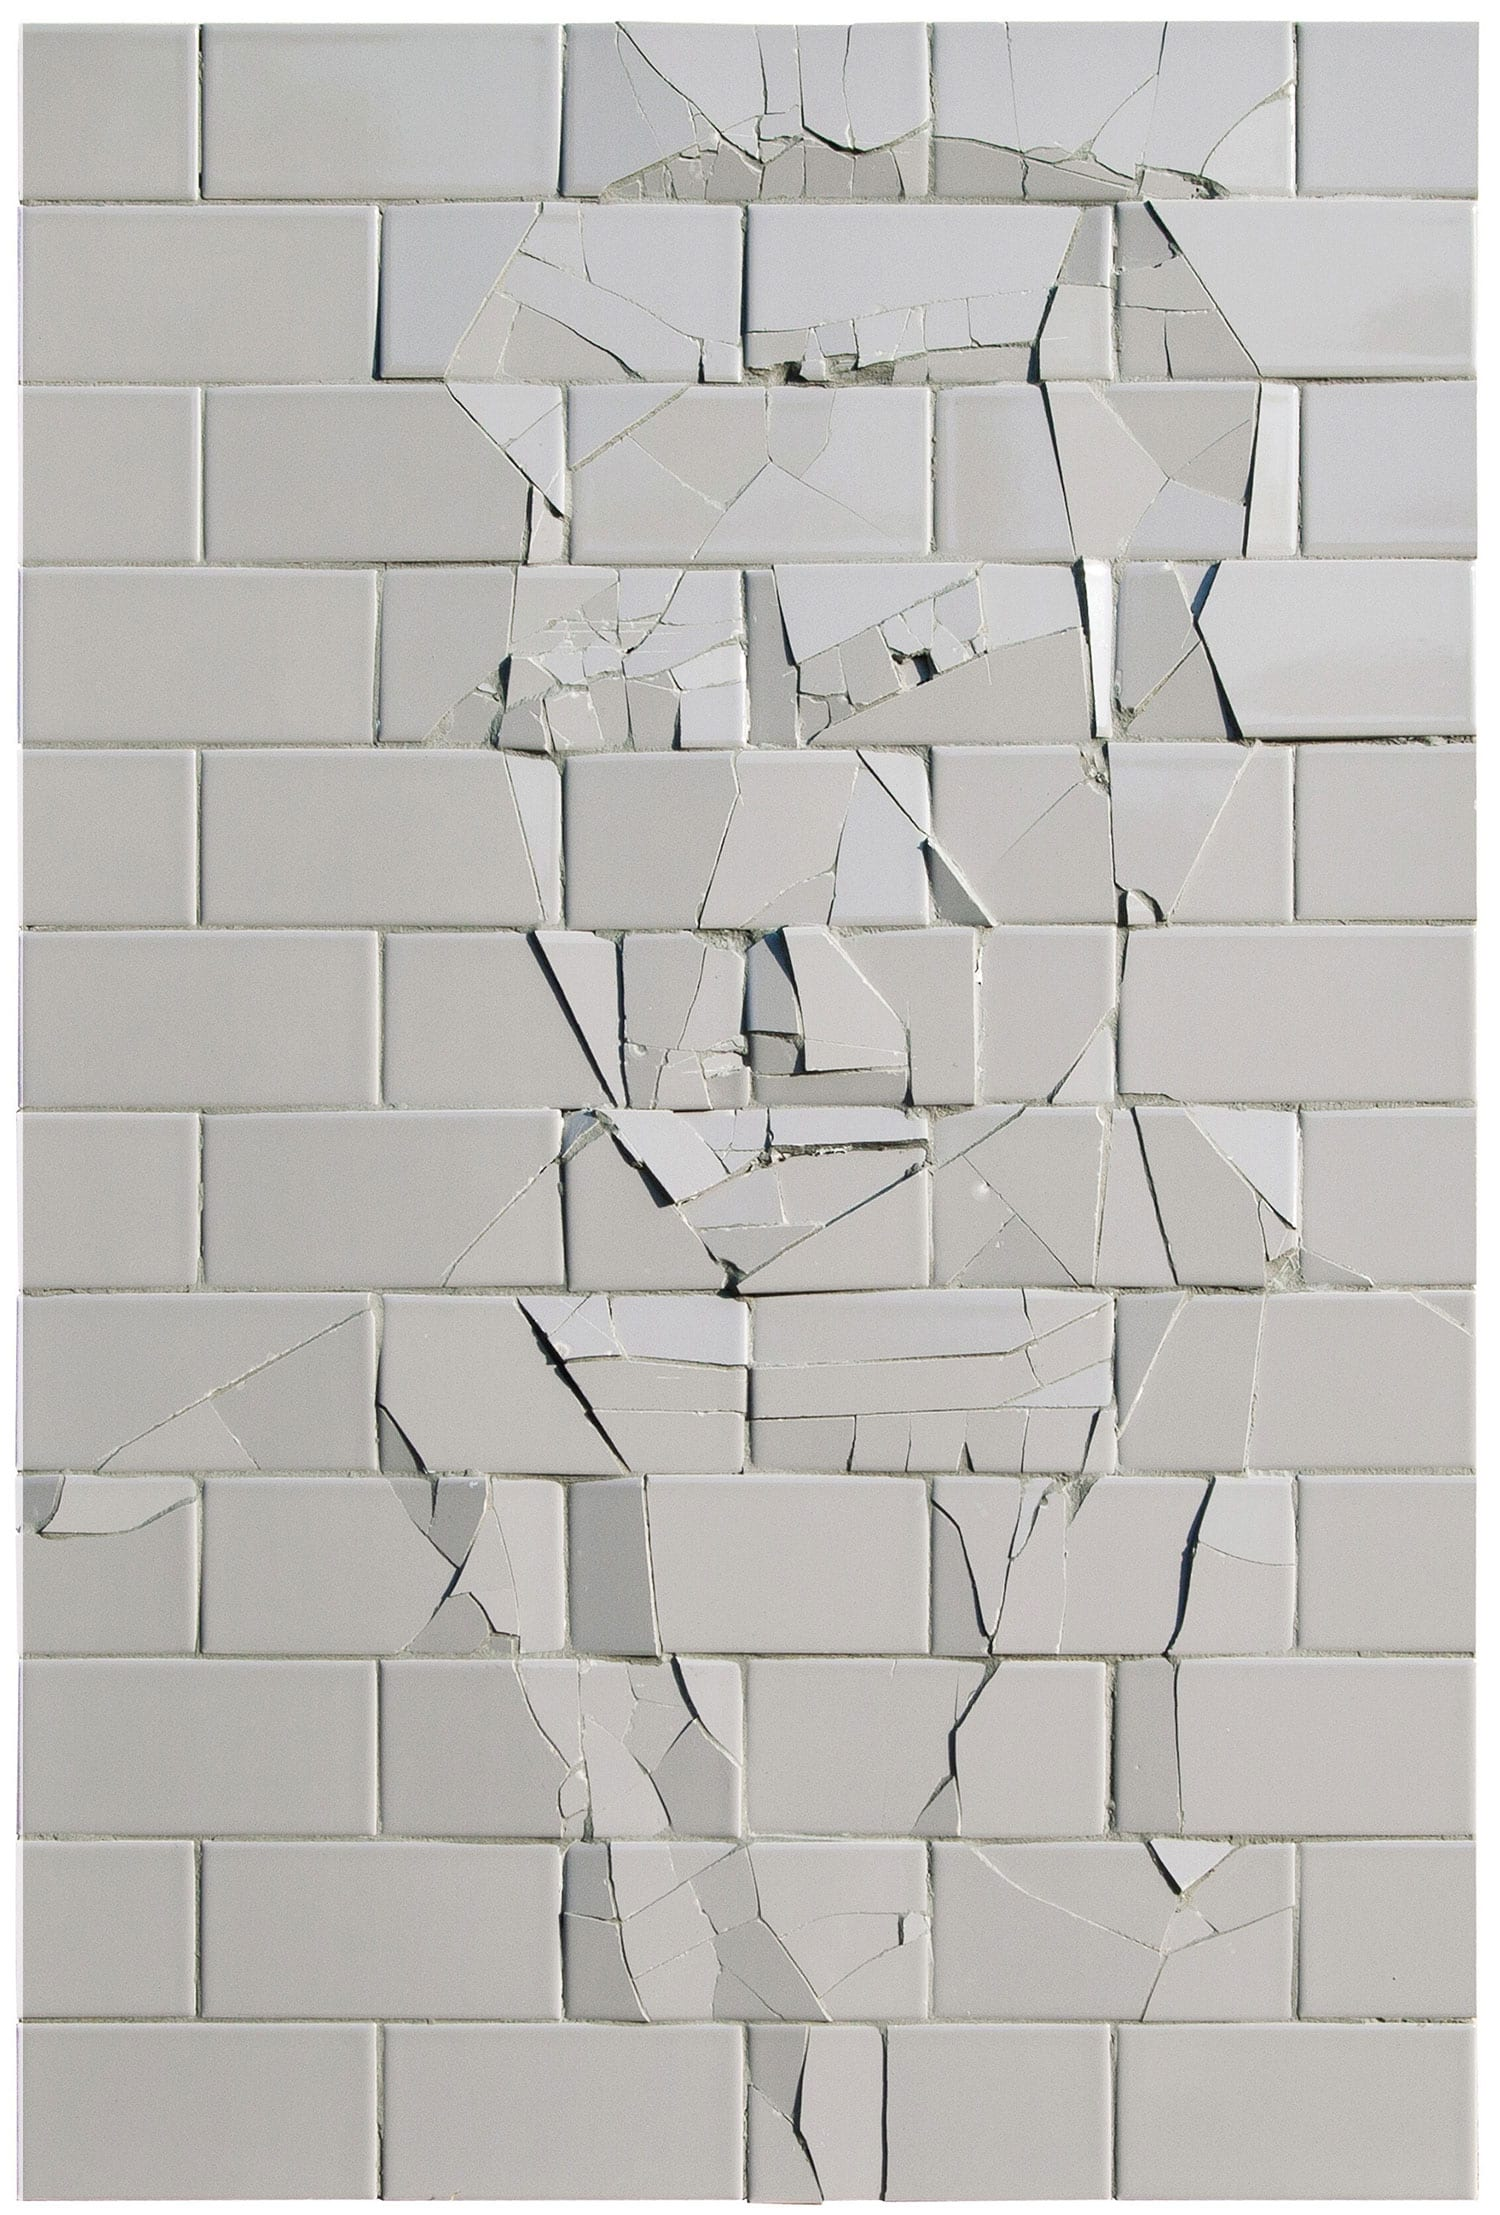 Emerging Figures by Graziano Locatelli | Yellowtrace